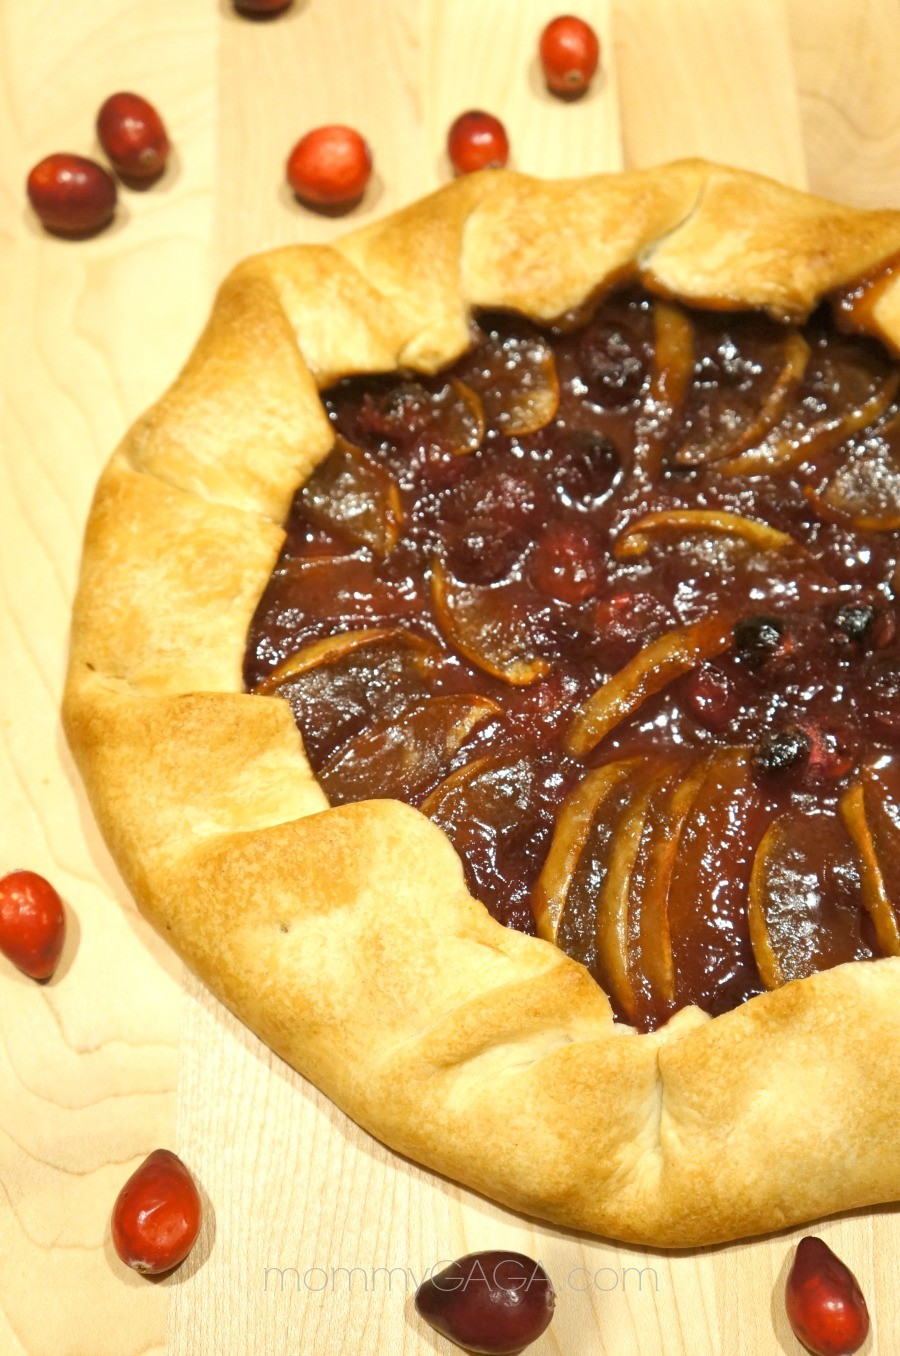 and chestnut tart lets rustic apple tart s with calvados whipped cream ...